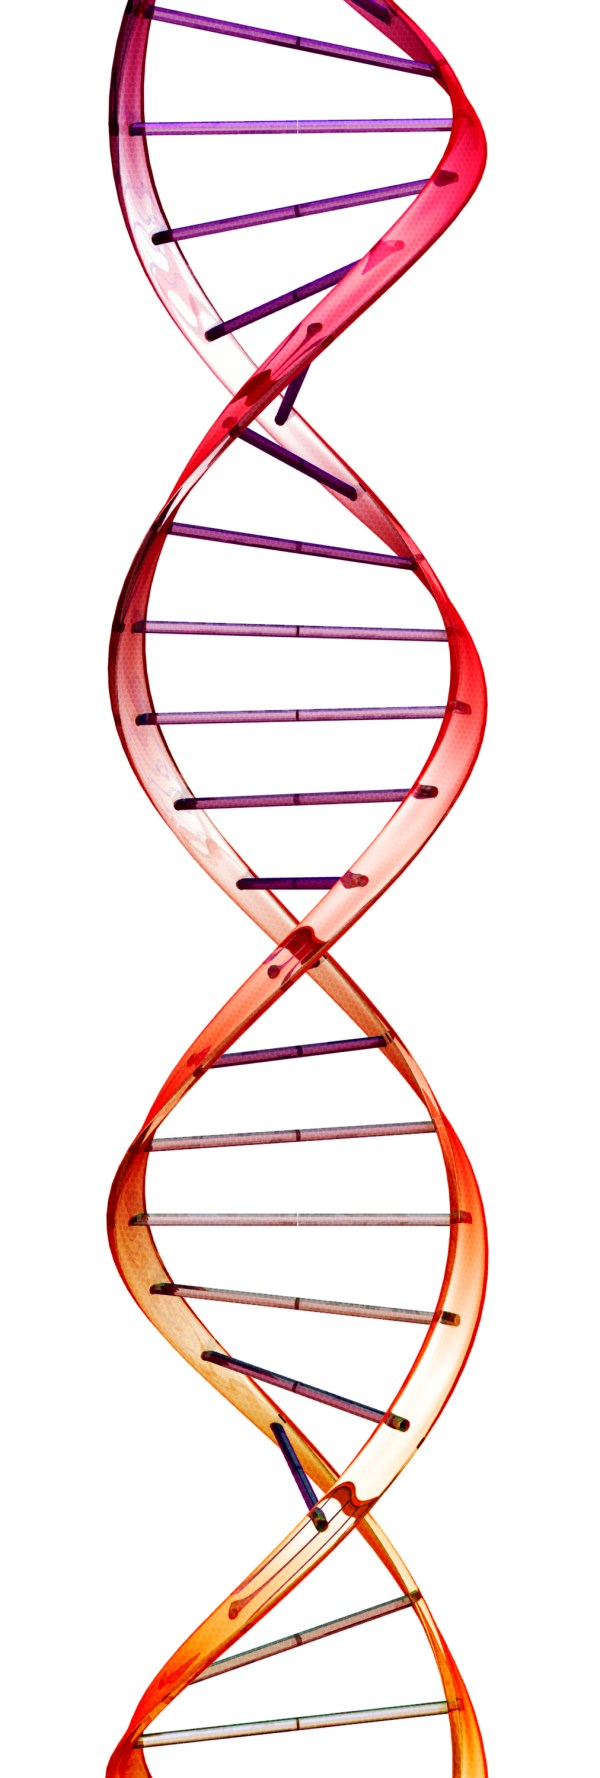 double helix – Science and Belief